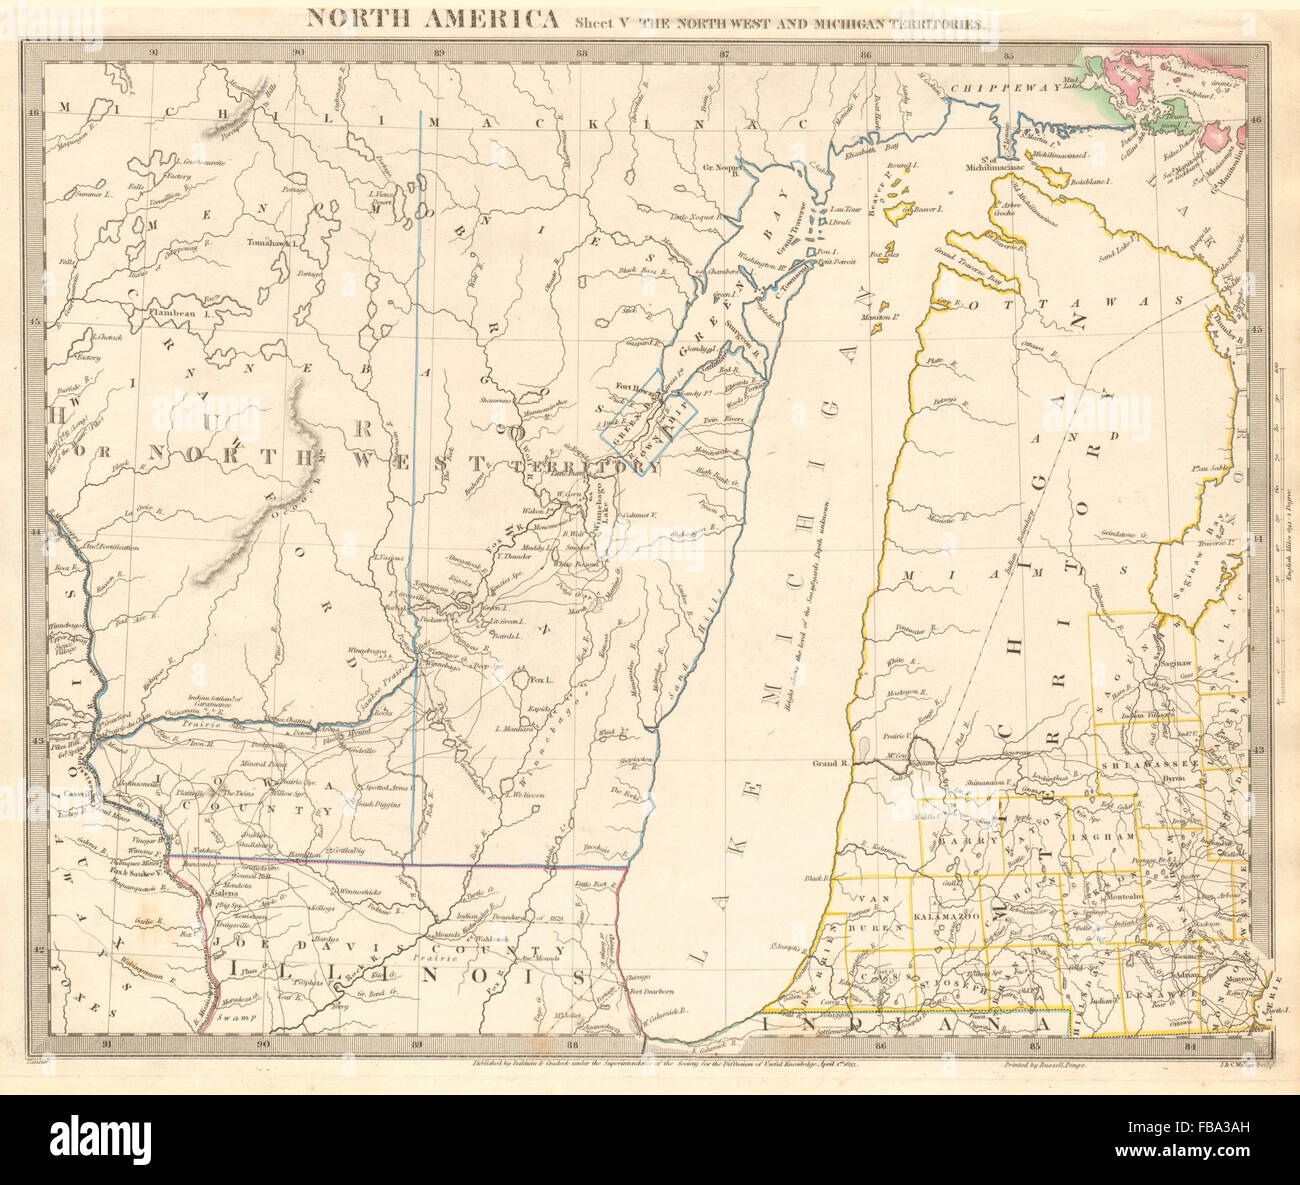 Michigan And Wisconsin Map.Lake Michigan Wisconsin Nw Territory Indian Tribes Villages Sduk